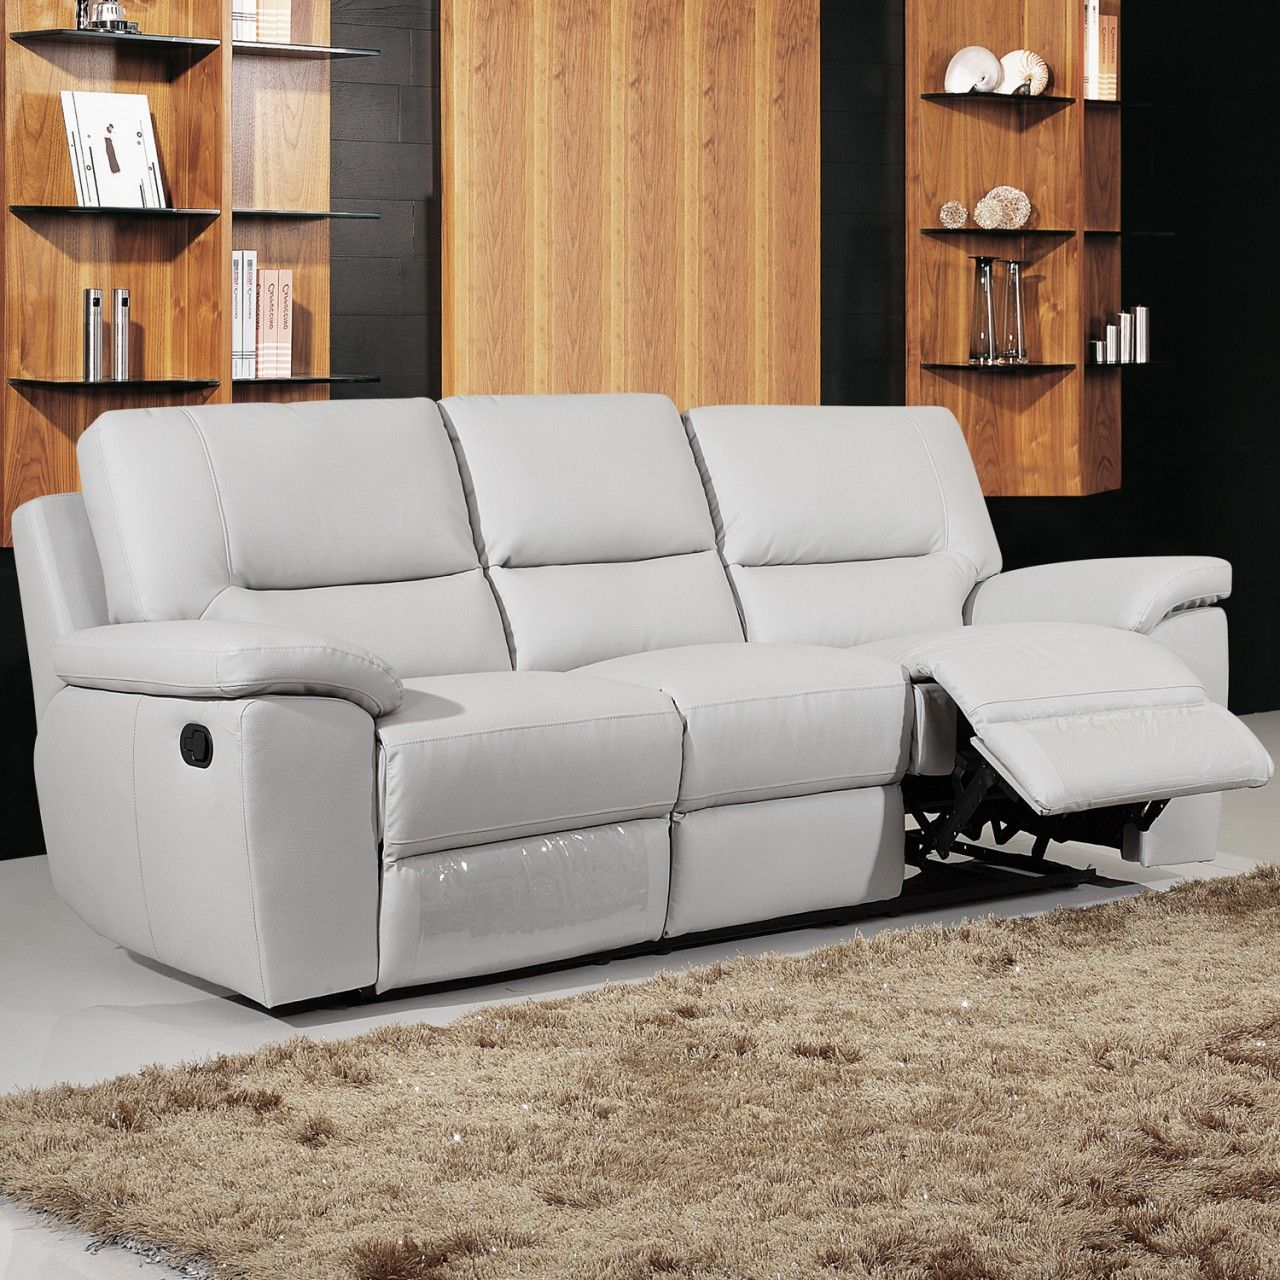 Awesome Light Grey Leather Reclining Sofa Fancy Light Grey Leather Reclining Sofa 50 On Off Grey Reclining Sofa Grey Leather Reclining Sofa Best Leather Sofa